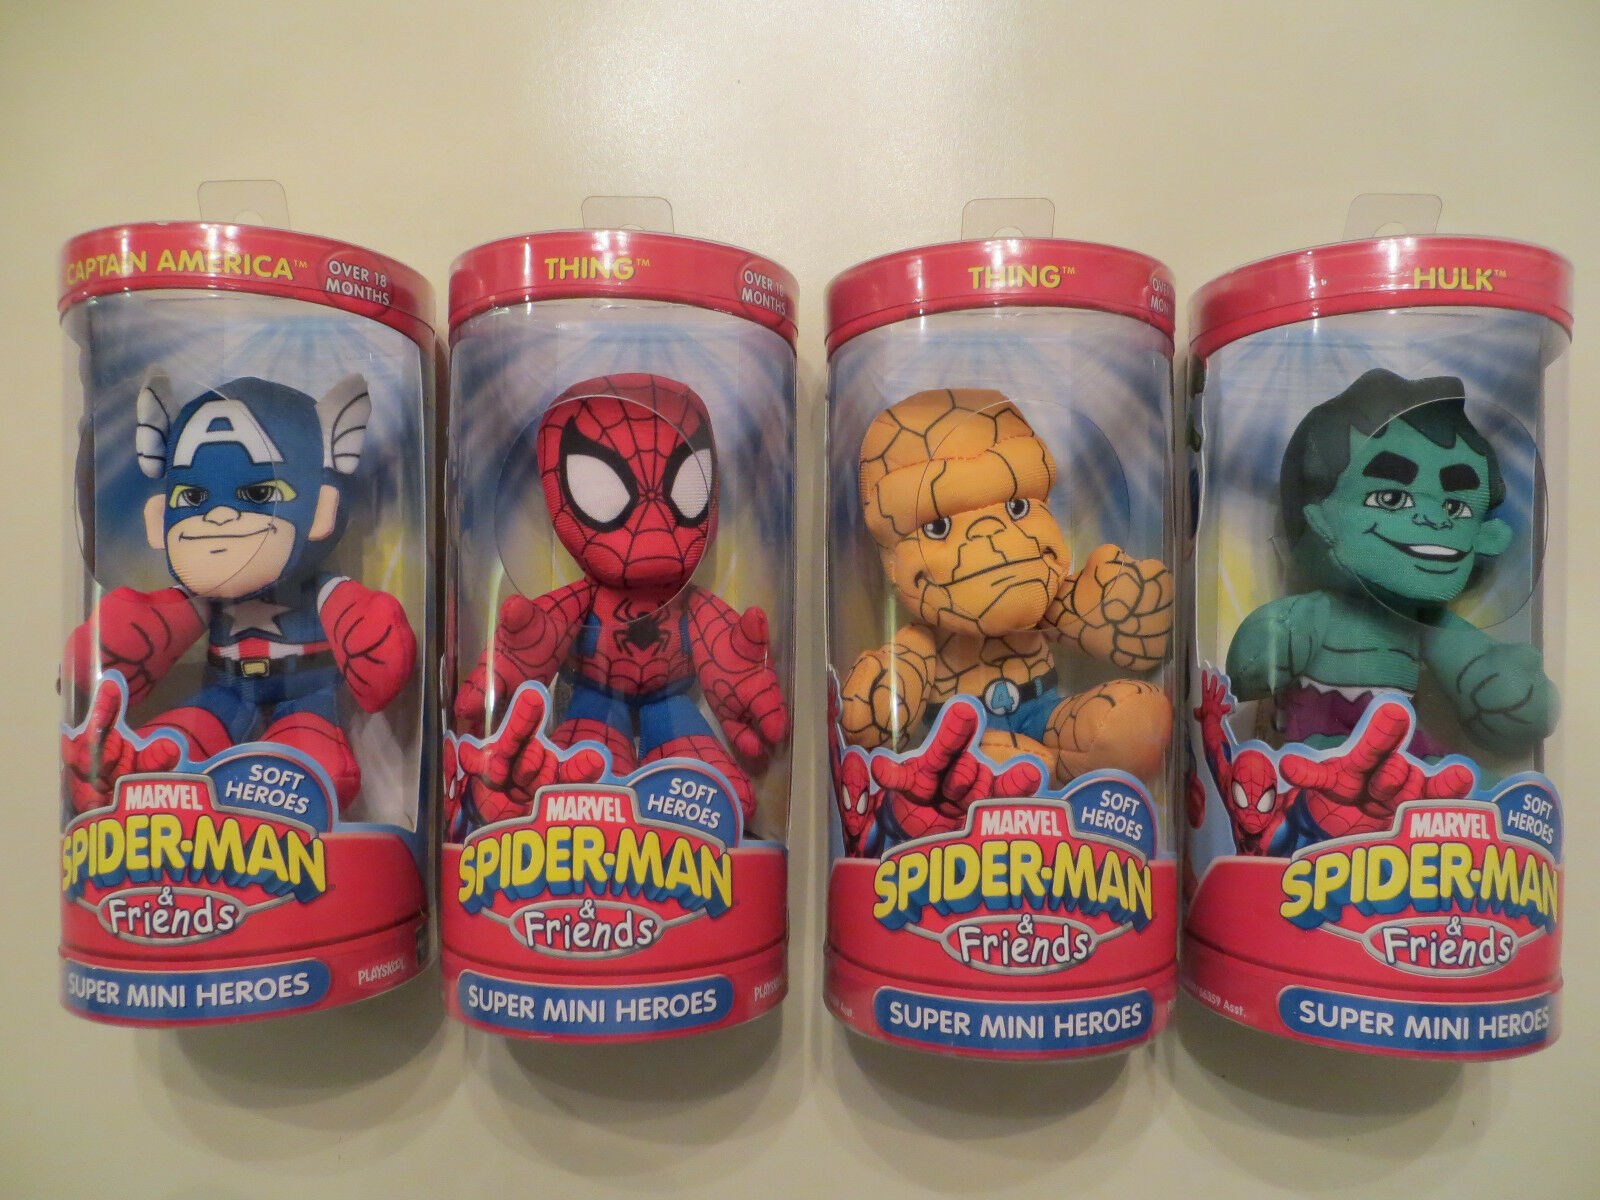 4 MARVEL MARVEL MARVEL SPIDERuomo & FRIENDS SUPER MINI HEROES completare SET PLUSH THING HULK daafa9